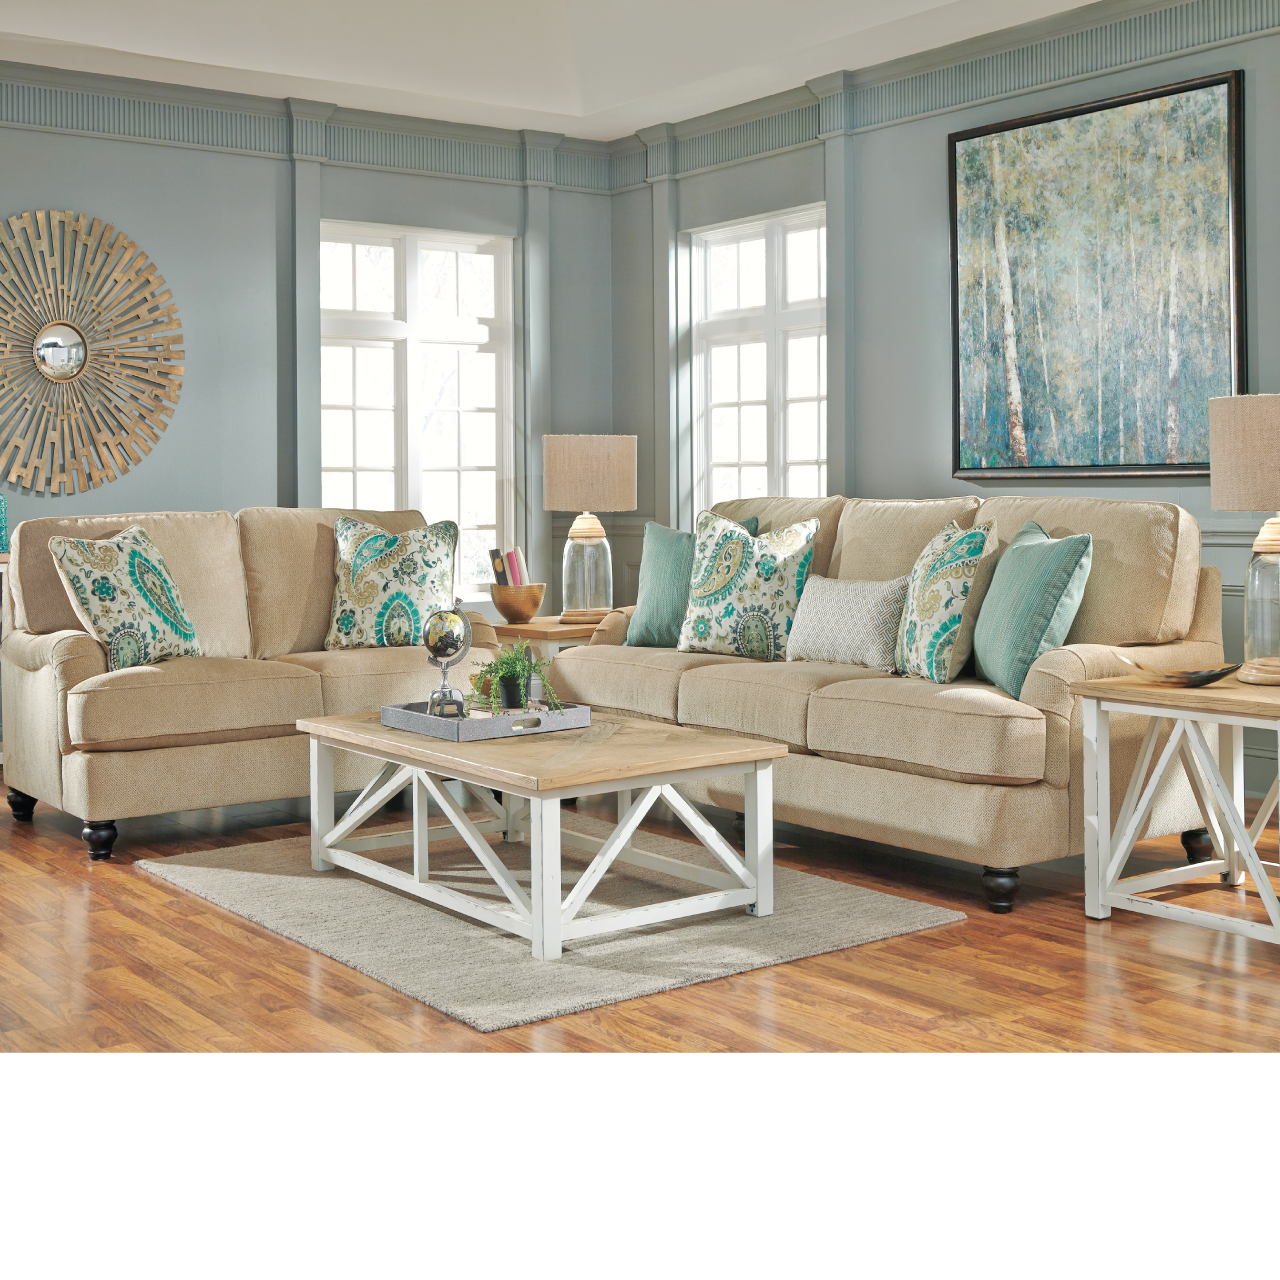 Coastal Living Room Ideas Lochian Sofa By Ashley Furniture At Kensington I Love This Entire Design